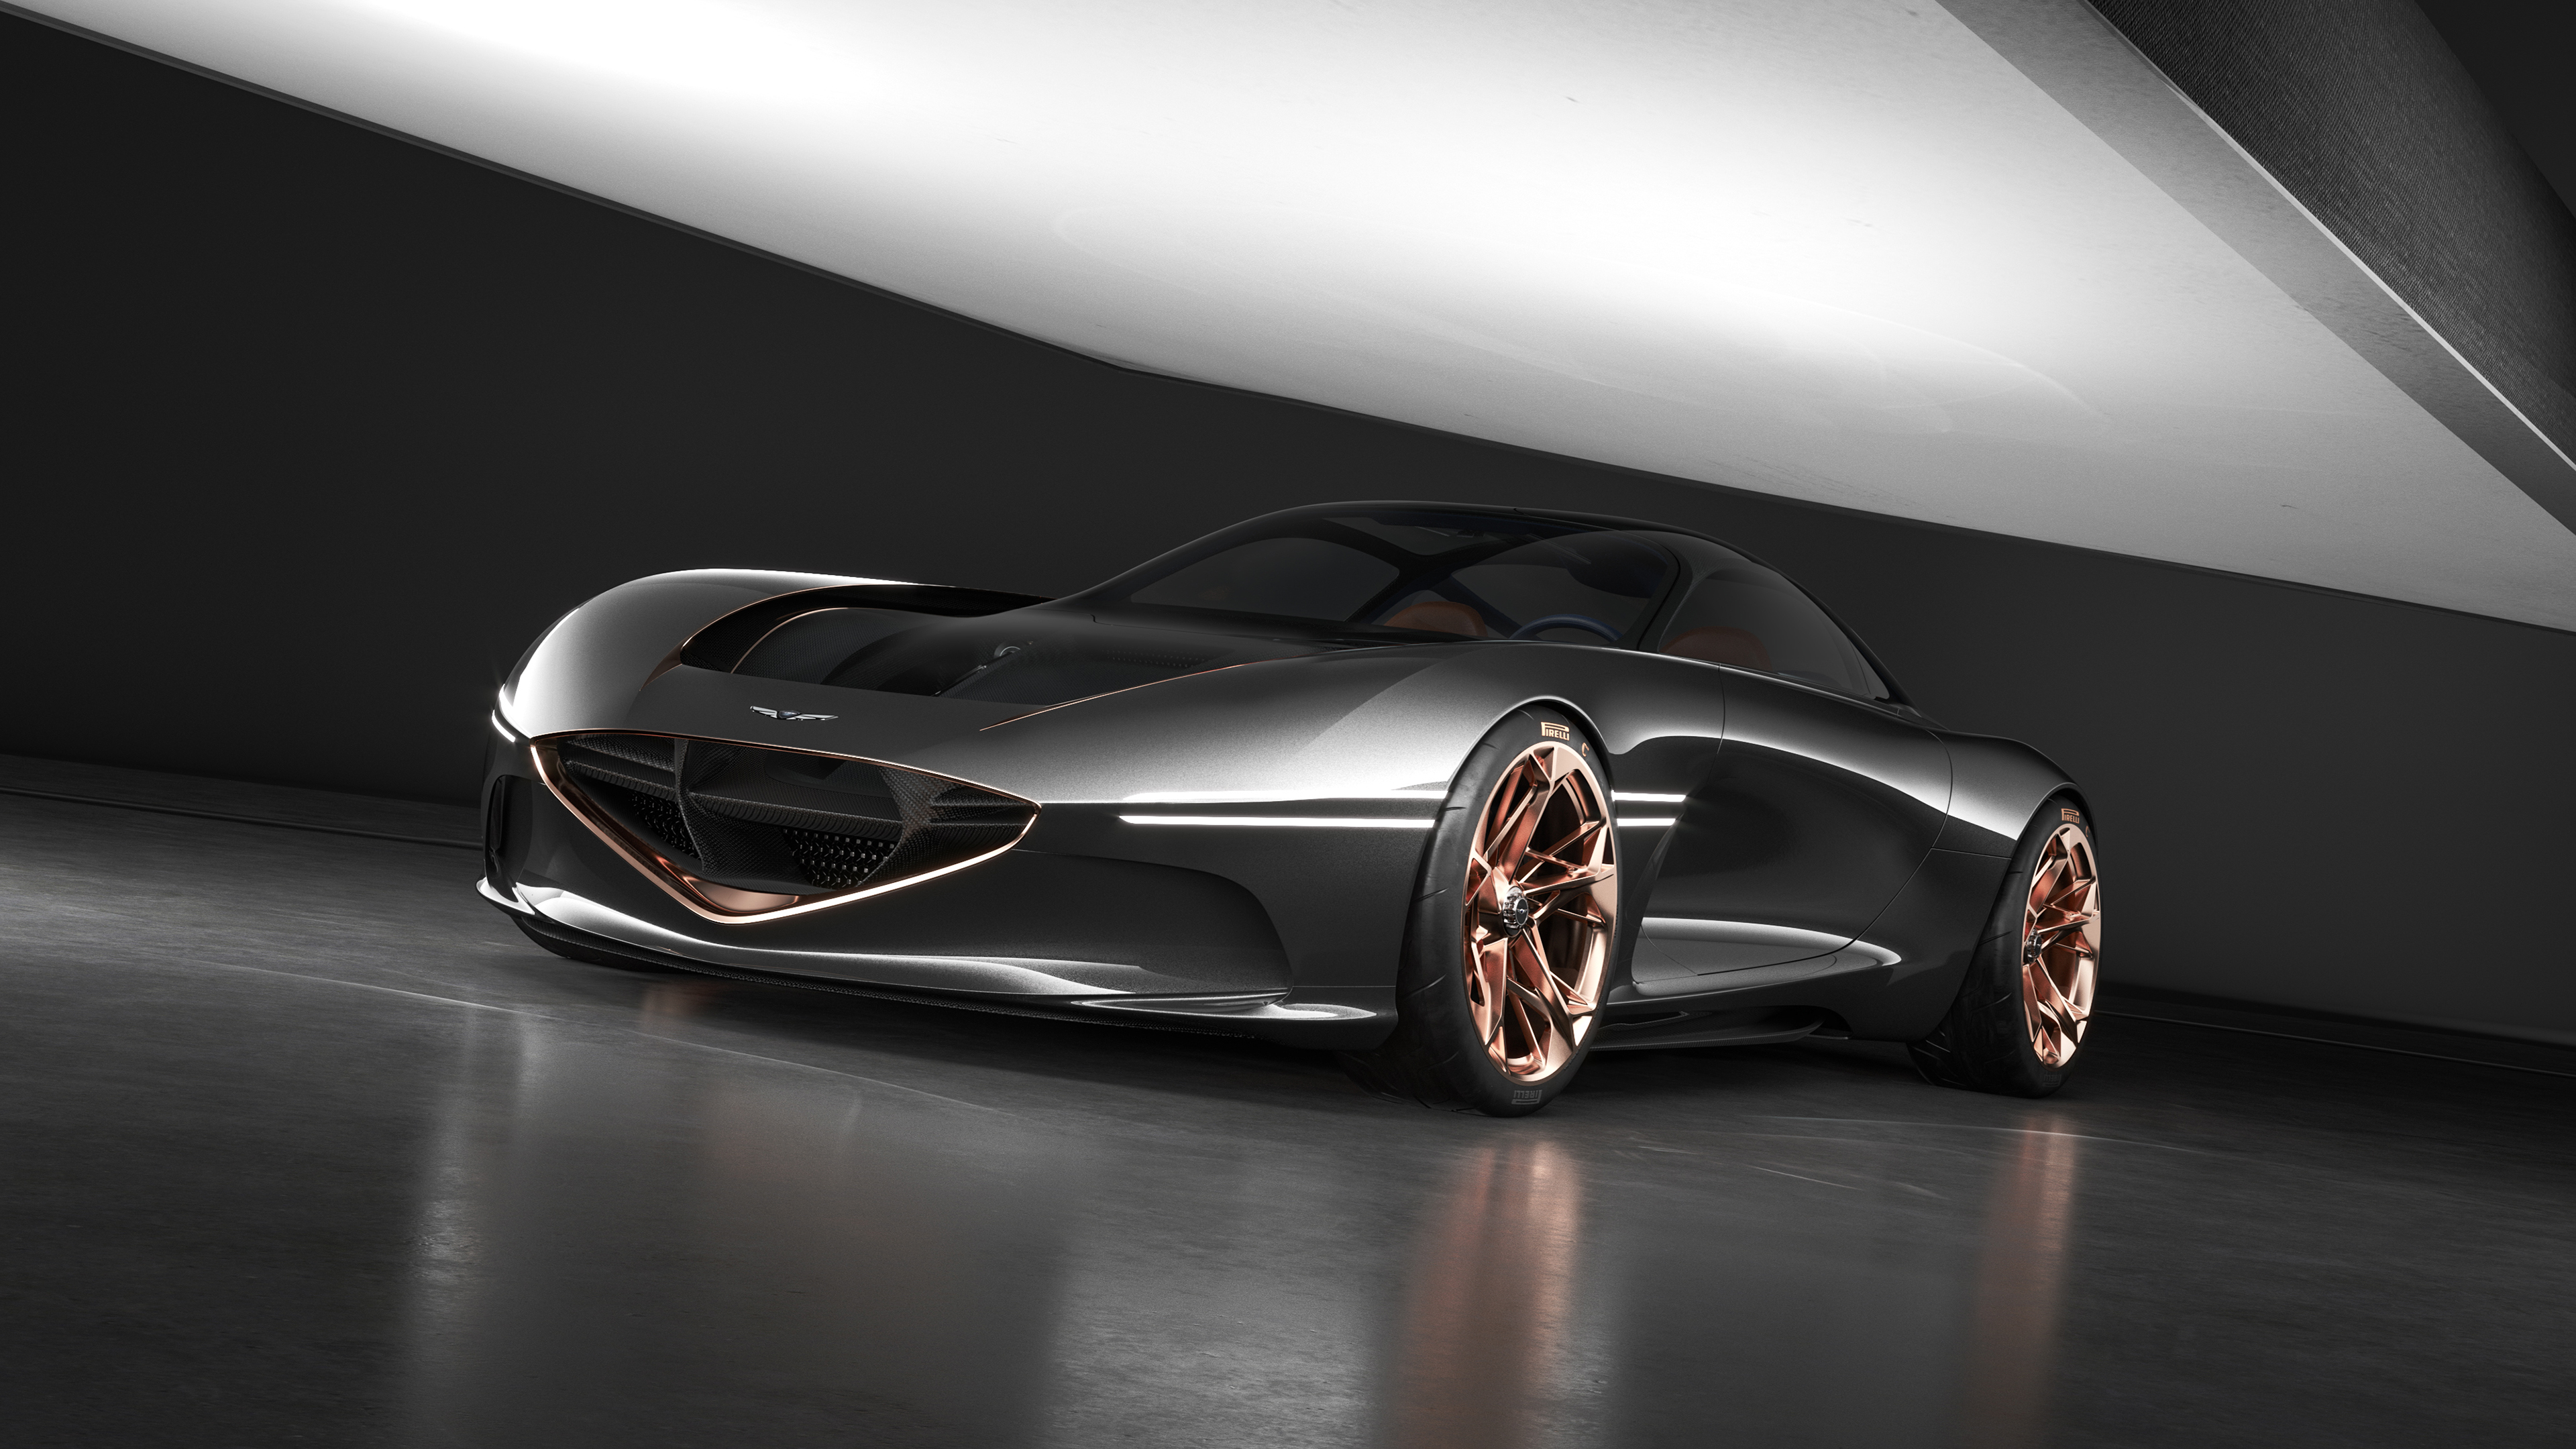 genesis essentia concept 1569188582 - Genesis Essentia Concept - hd-wallpapers, cars wallpapers, behance wallpapers, 4k-wallpapers